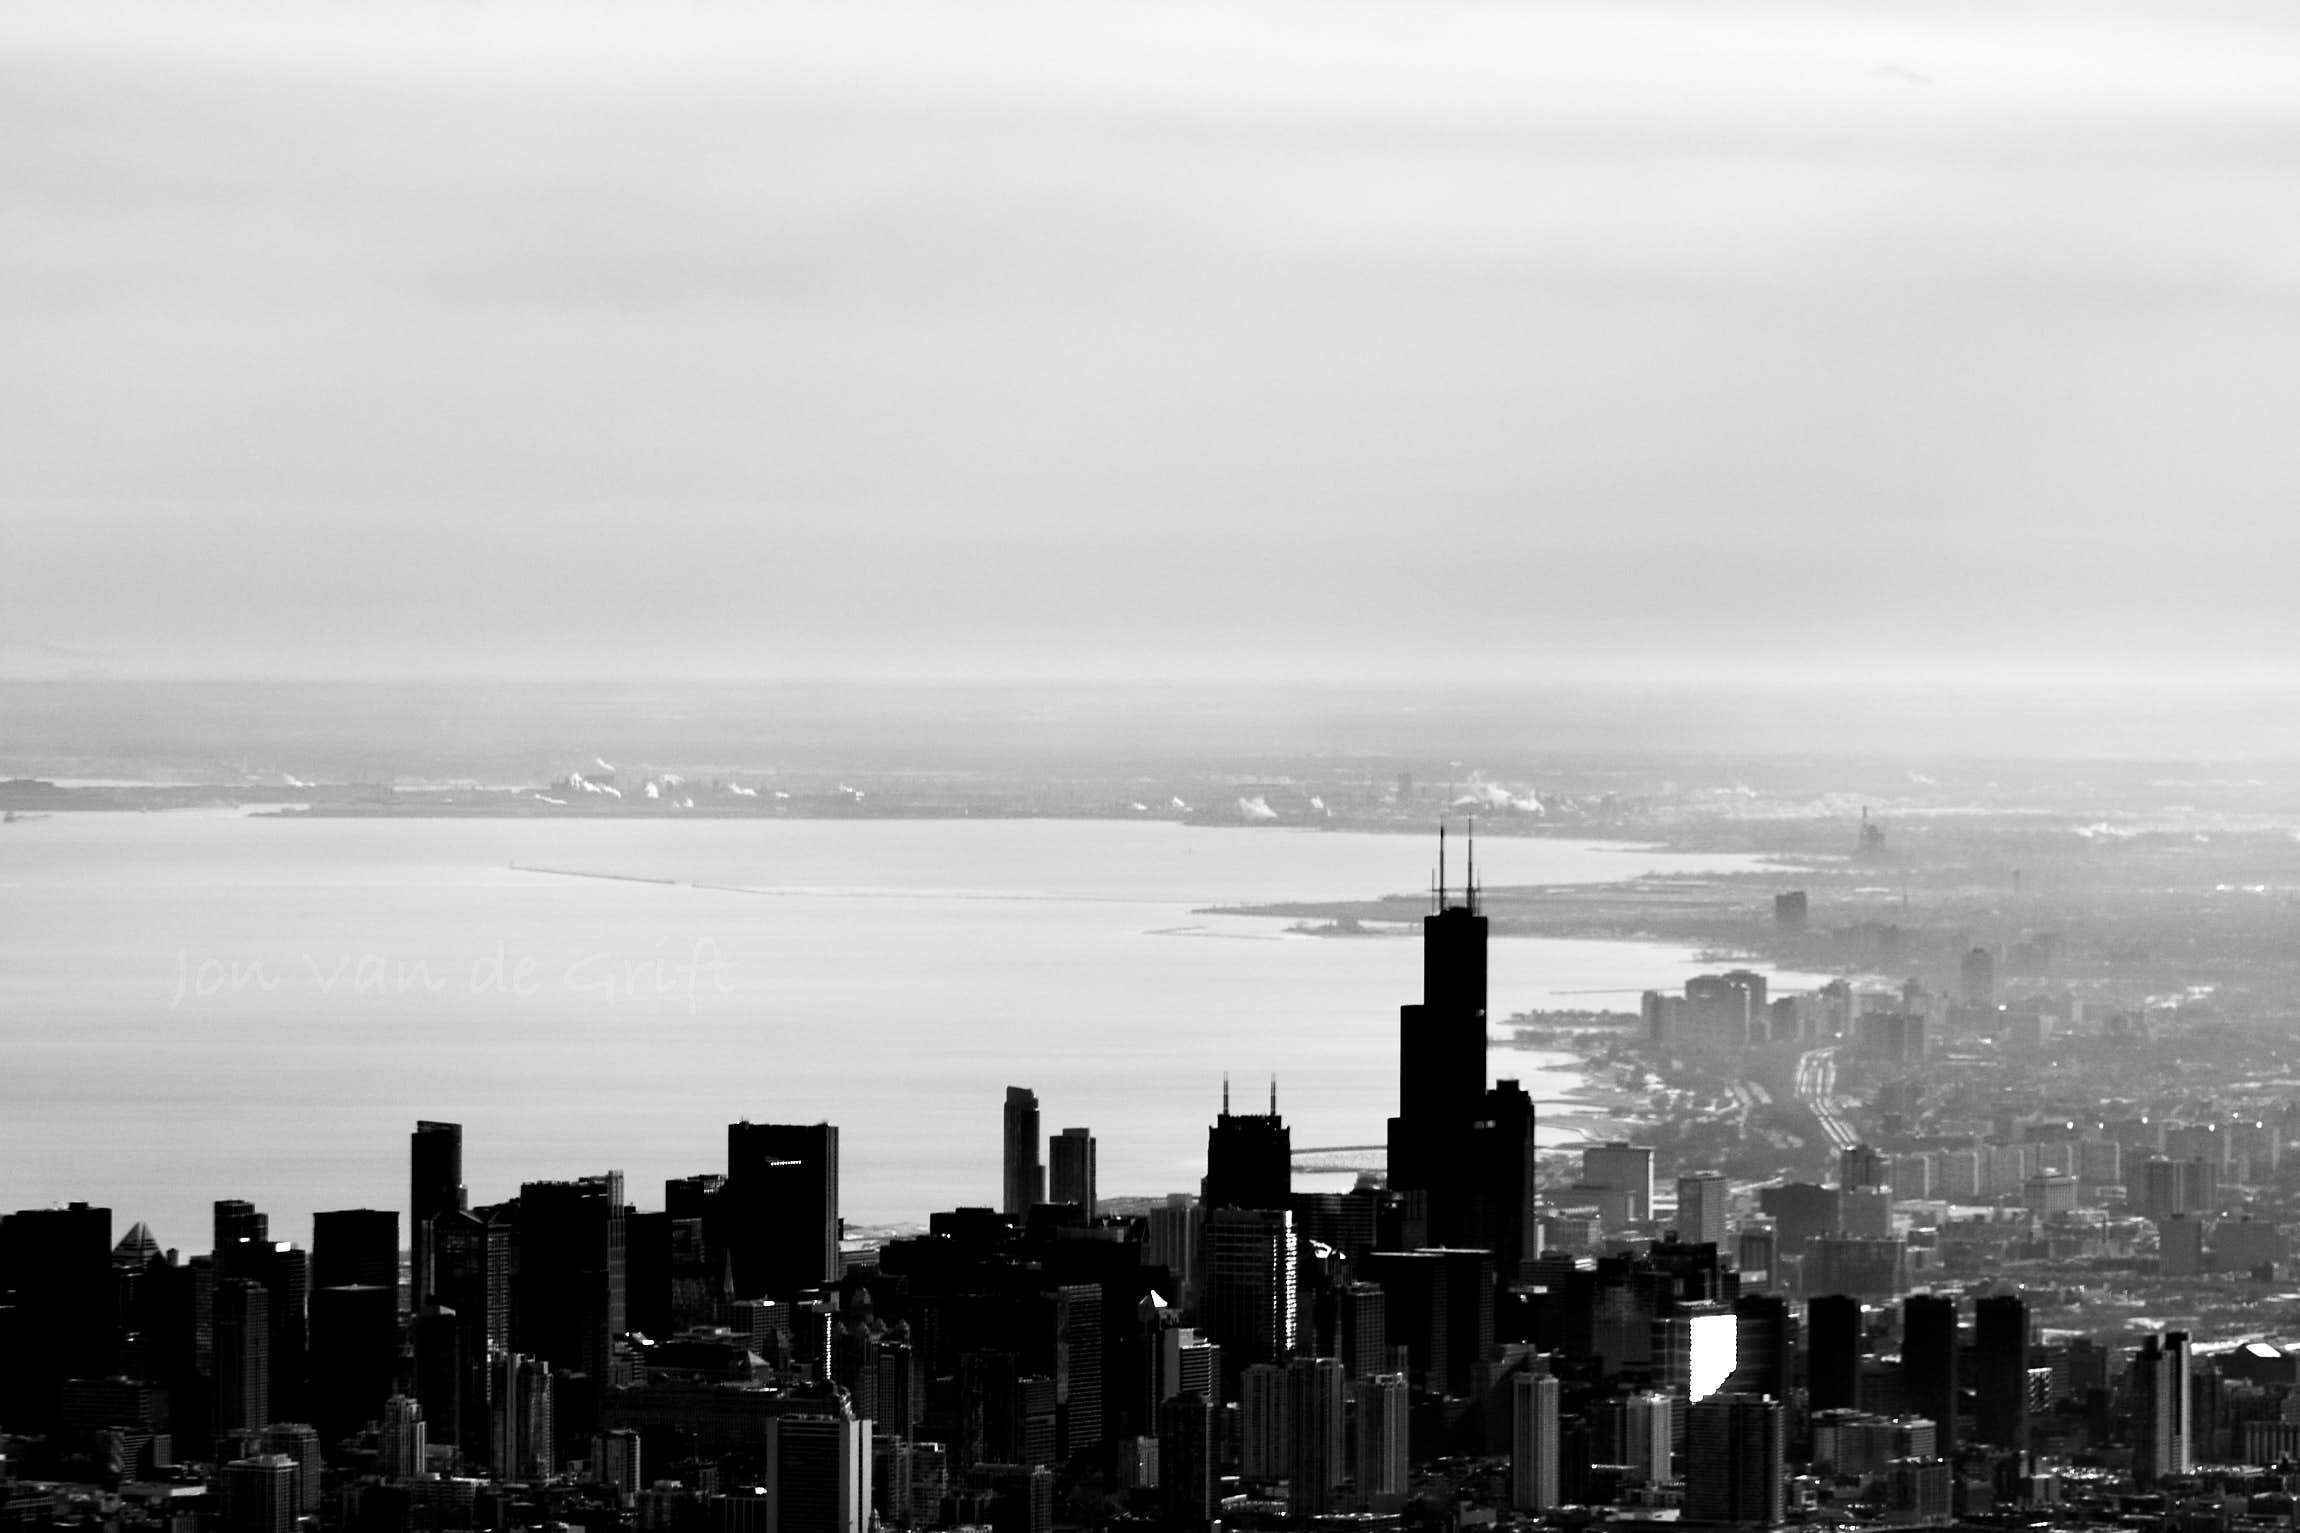 Black and white aerial photograph of the city of Chicago on Lake Michigan